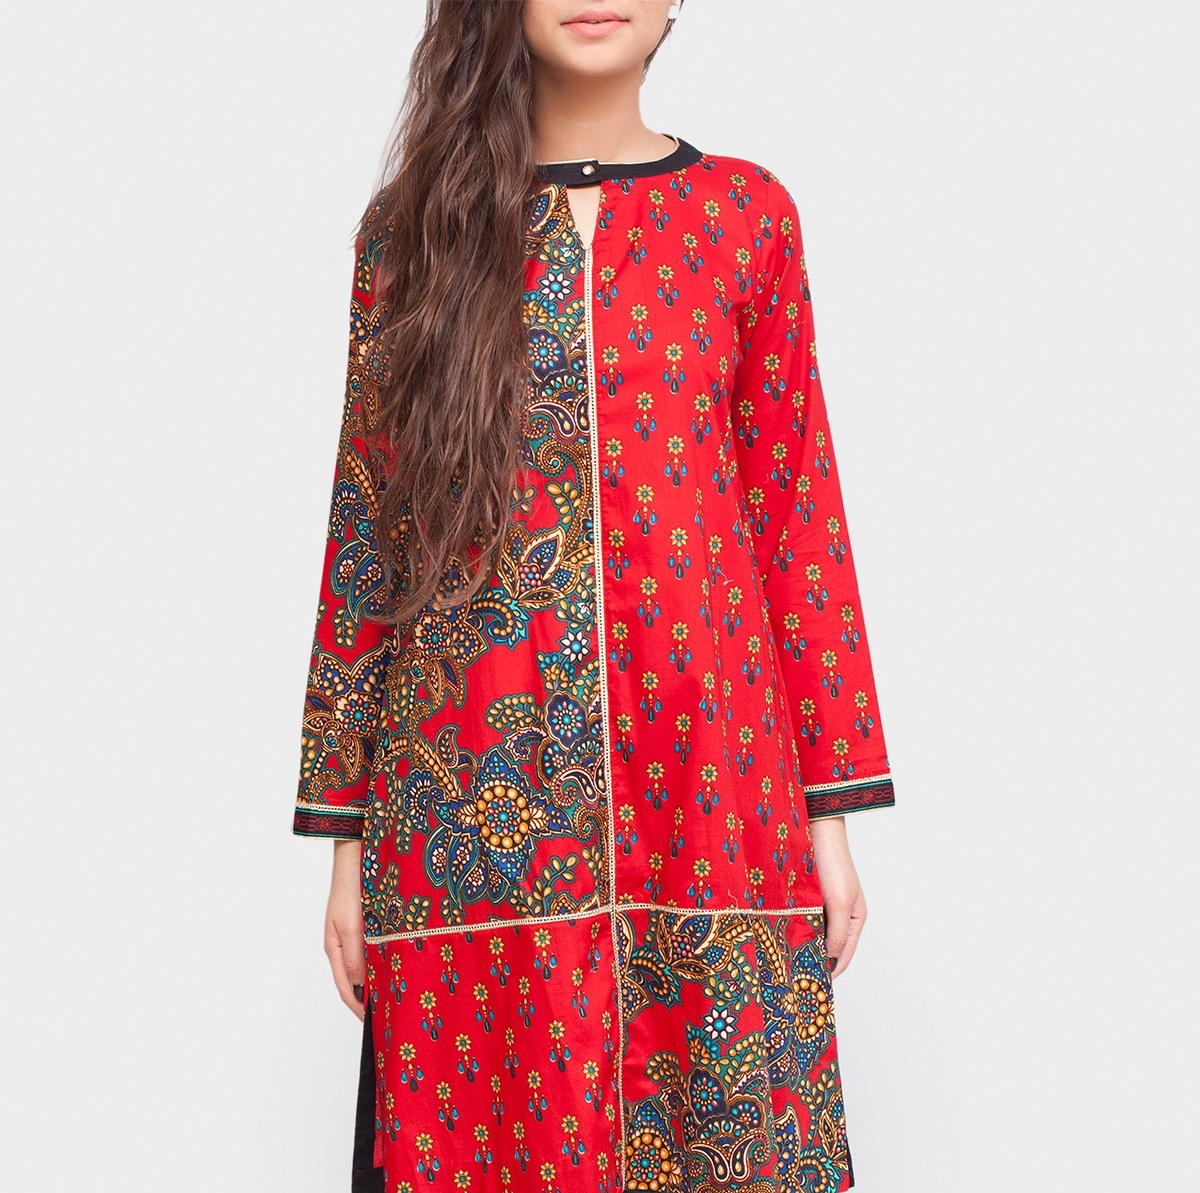 red cambric winter shirt by generation